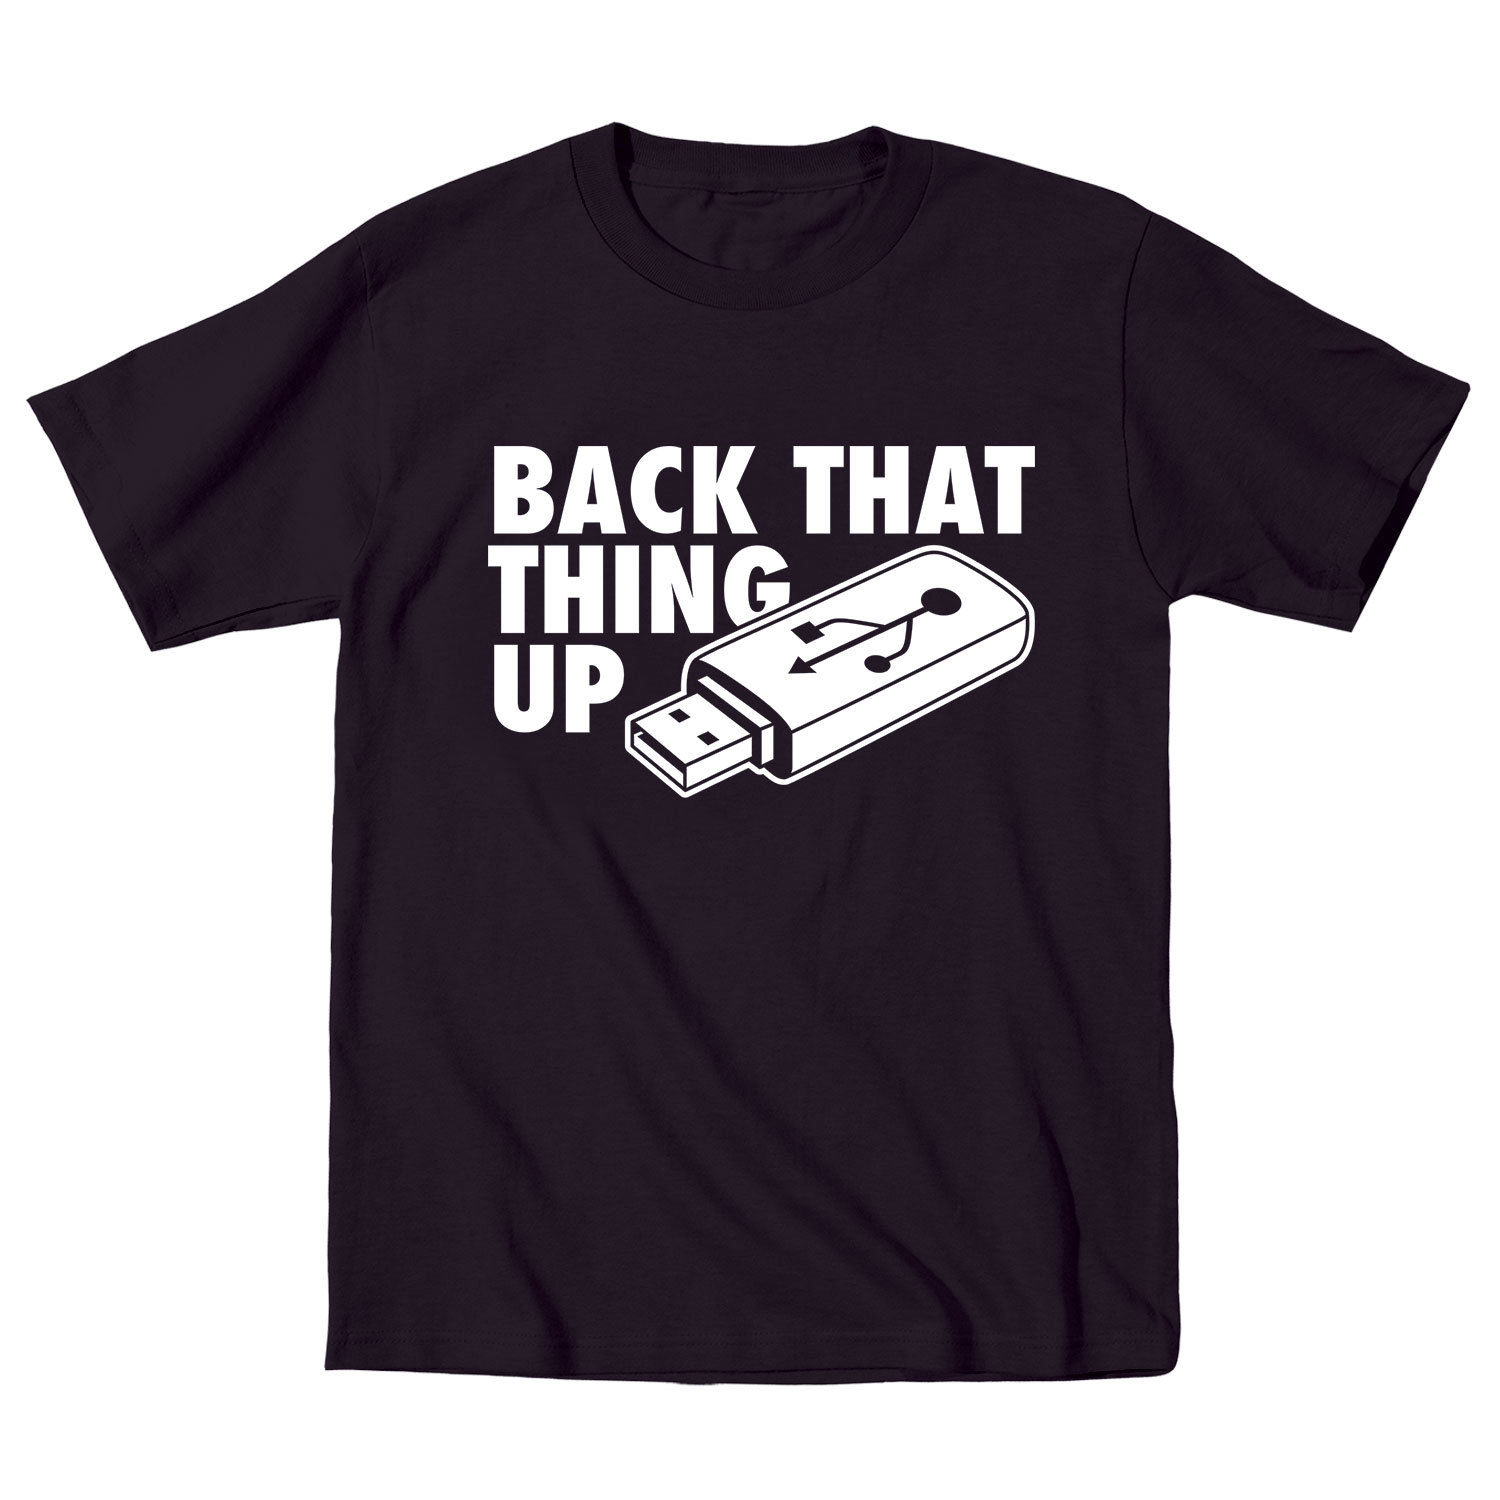 2019 New Brand Clothing Custom Special Print Men Back That Thing Up Funny Computer Geek T Shirt Design